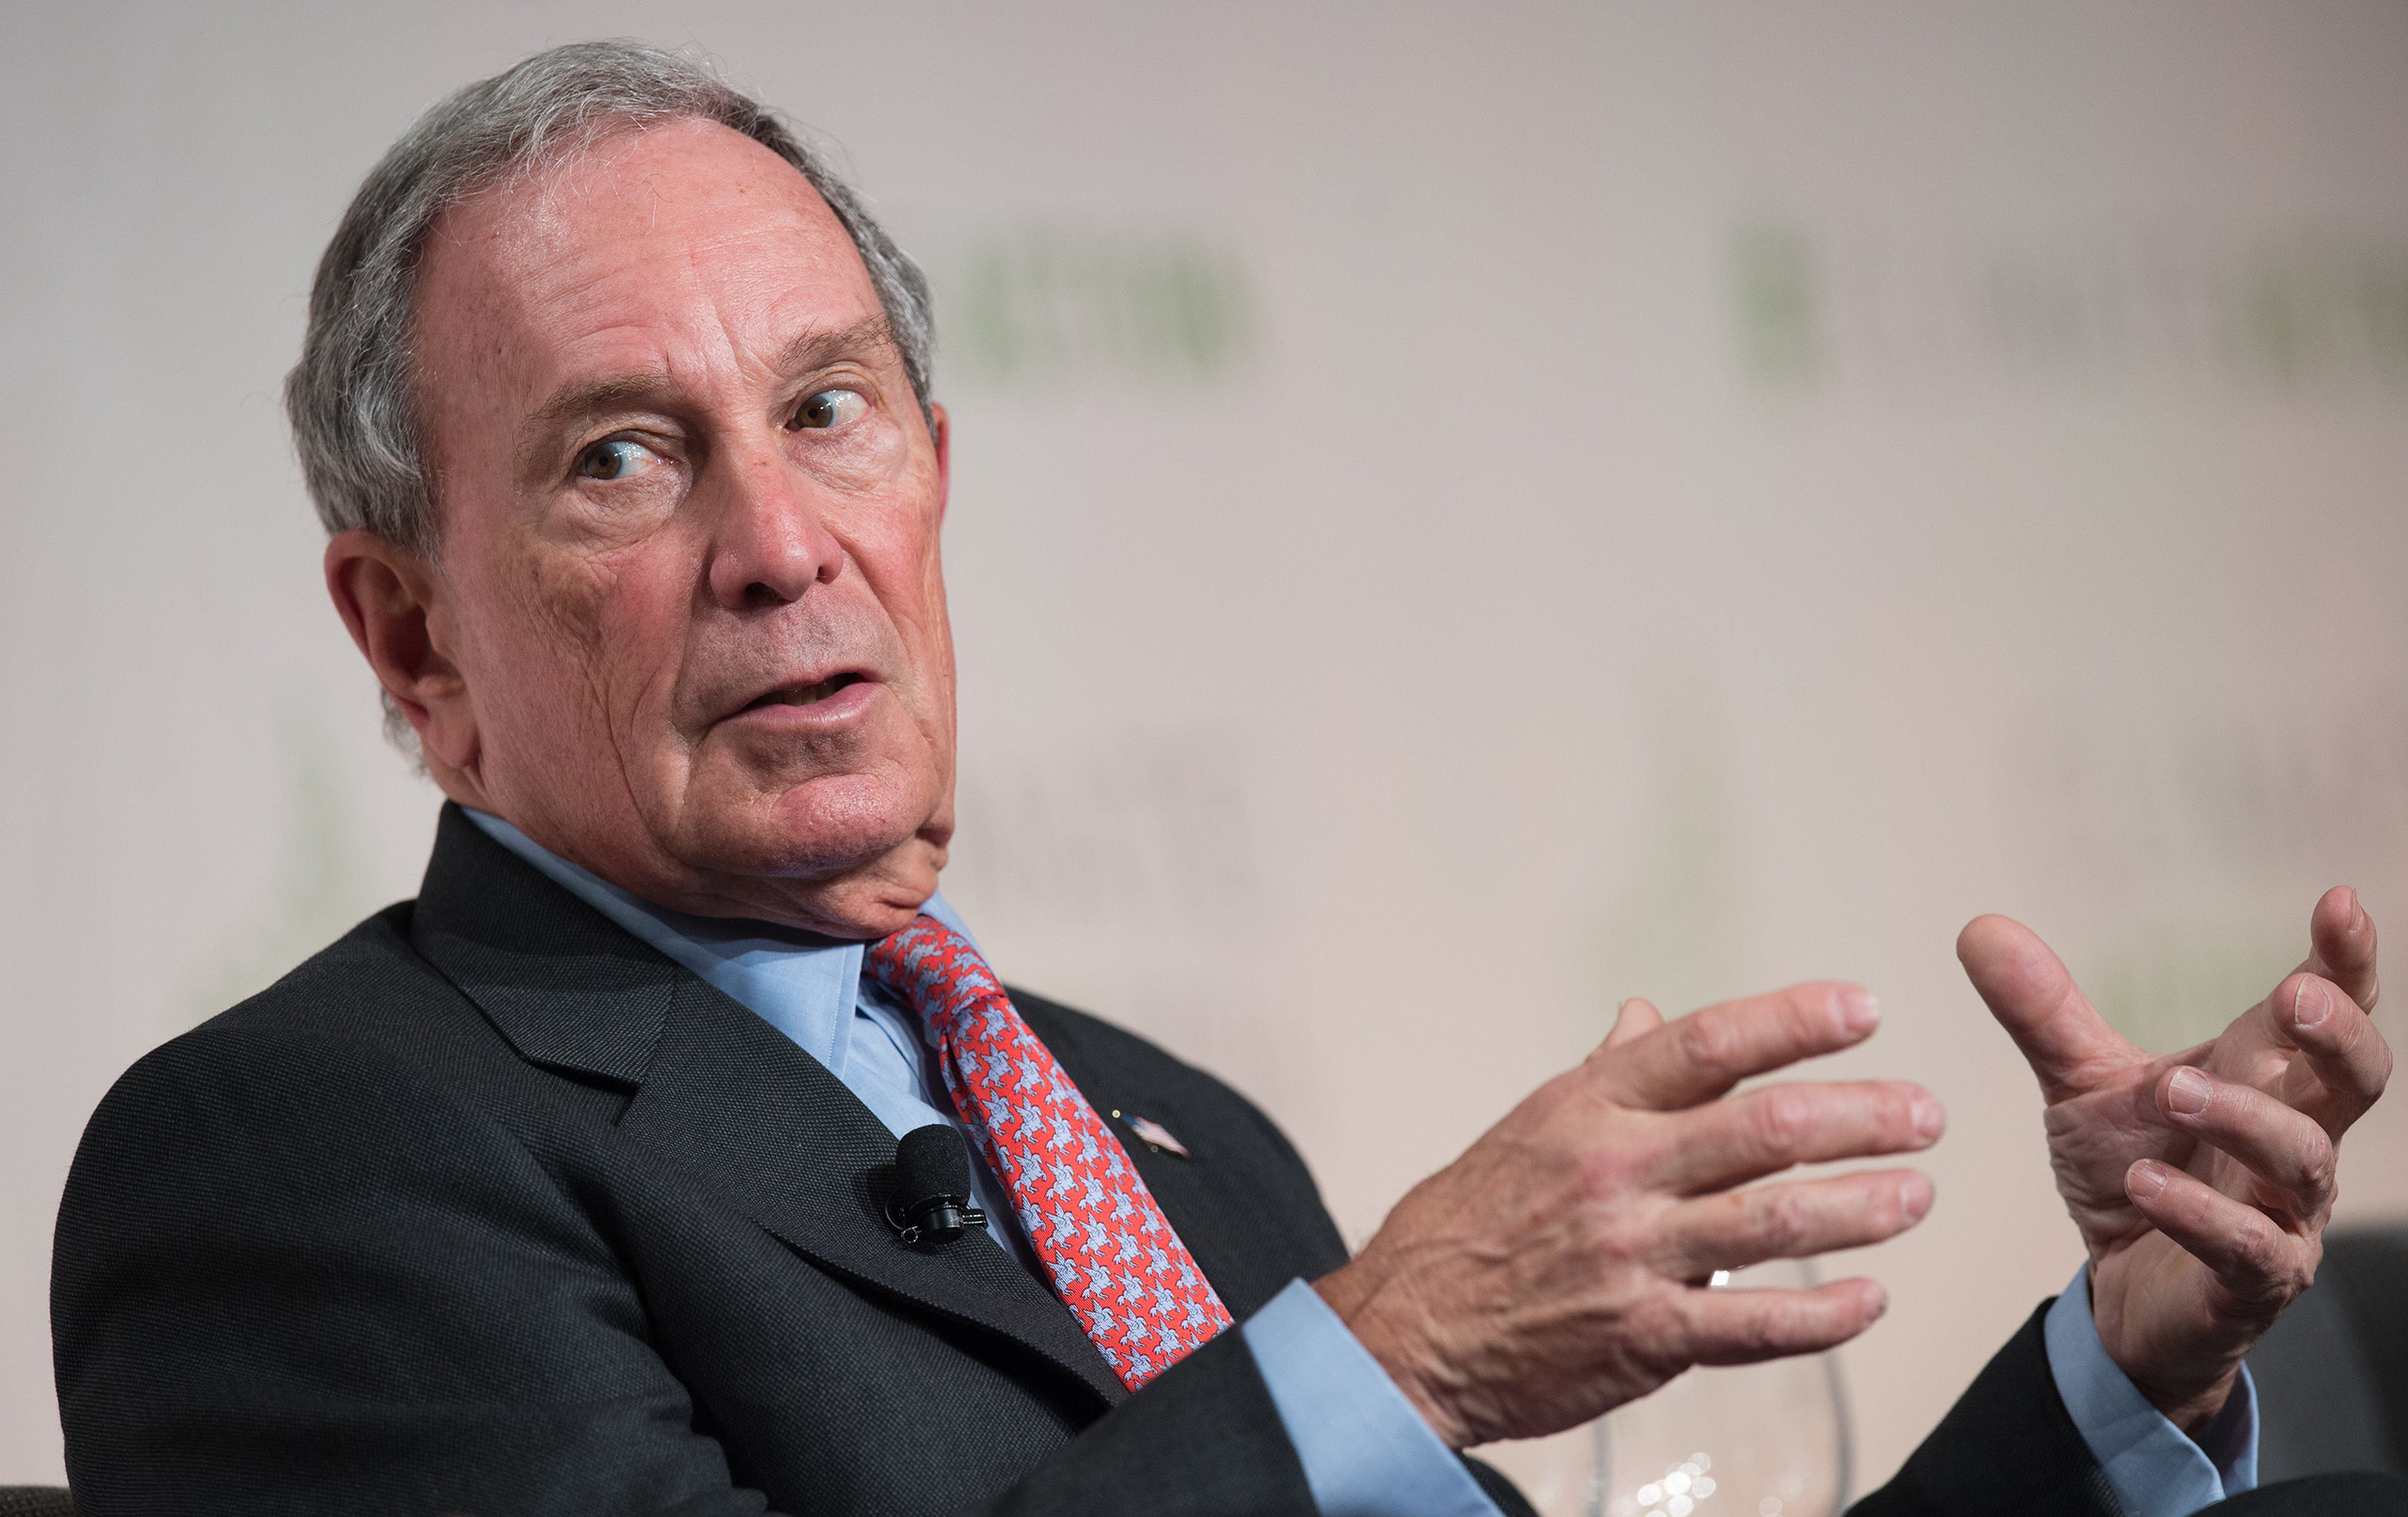 Michael Bloomberg participates in a discussion at the Climate Action 2016 conference in Washington, DC, on May 5, 2016.